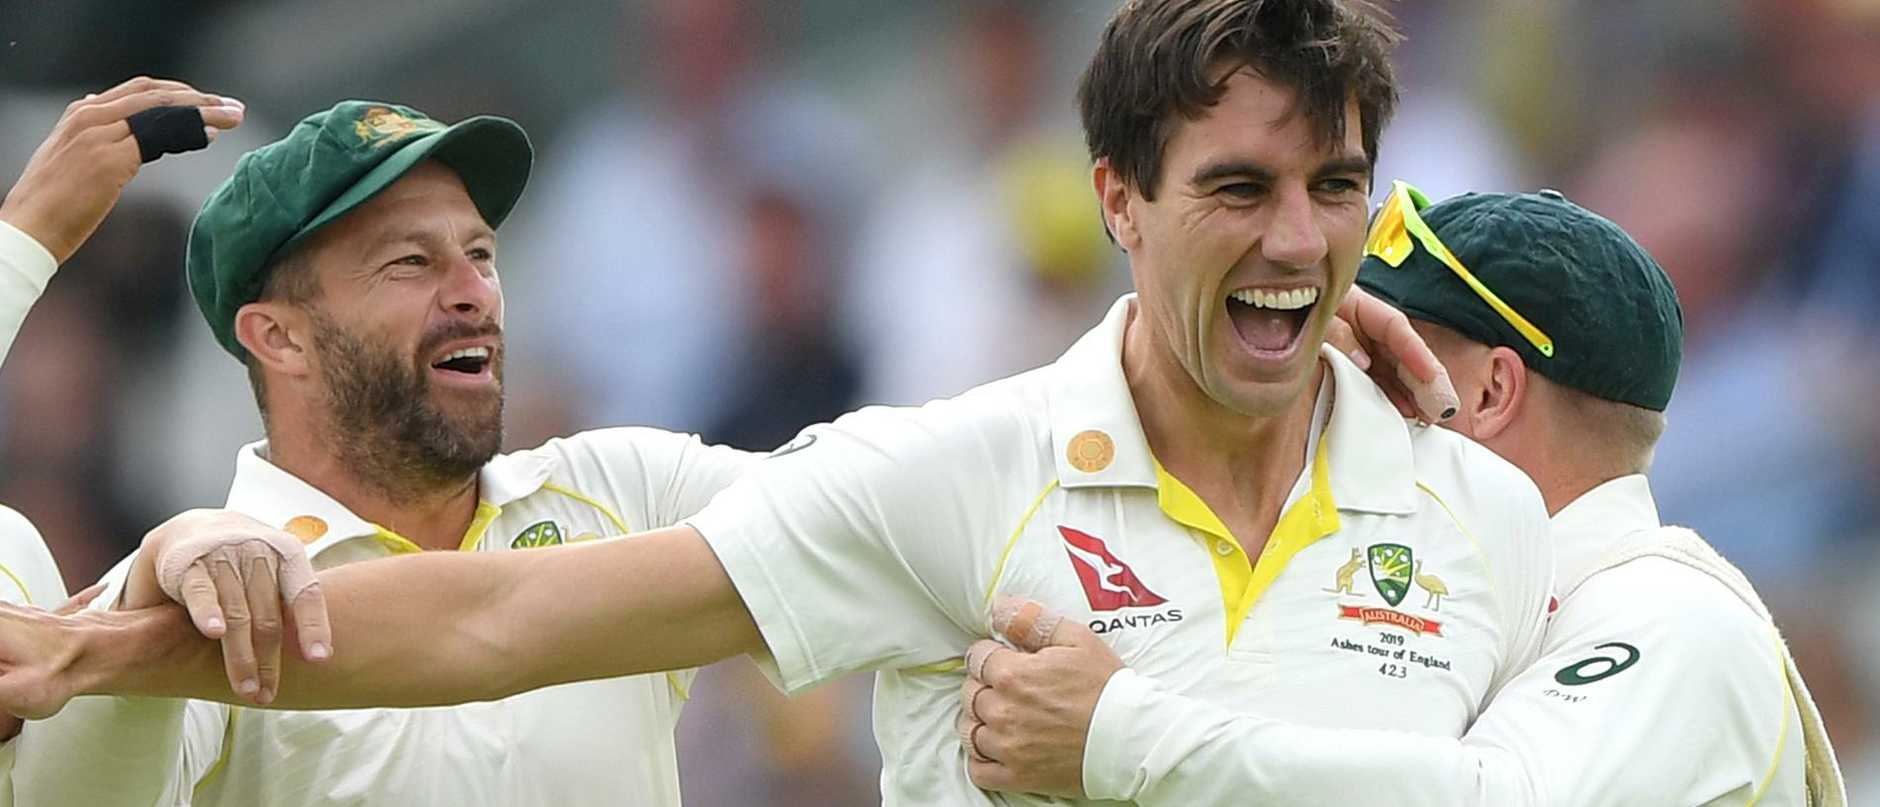 Pat Cummins has been consistently the best bowler on show this Ashes series so far.